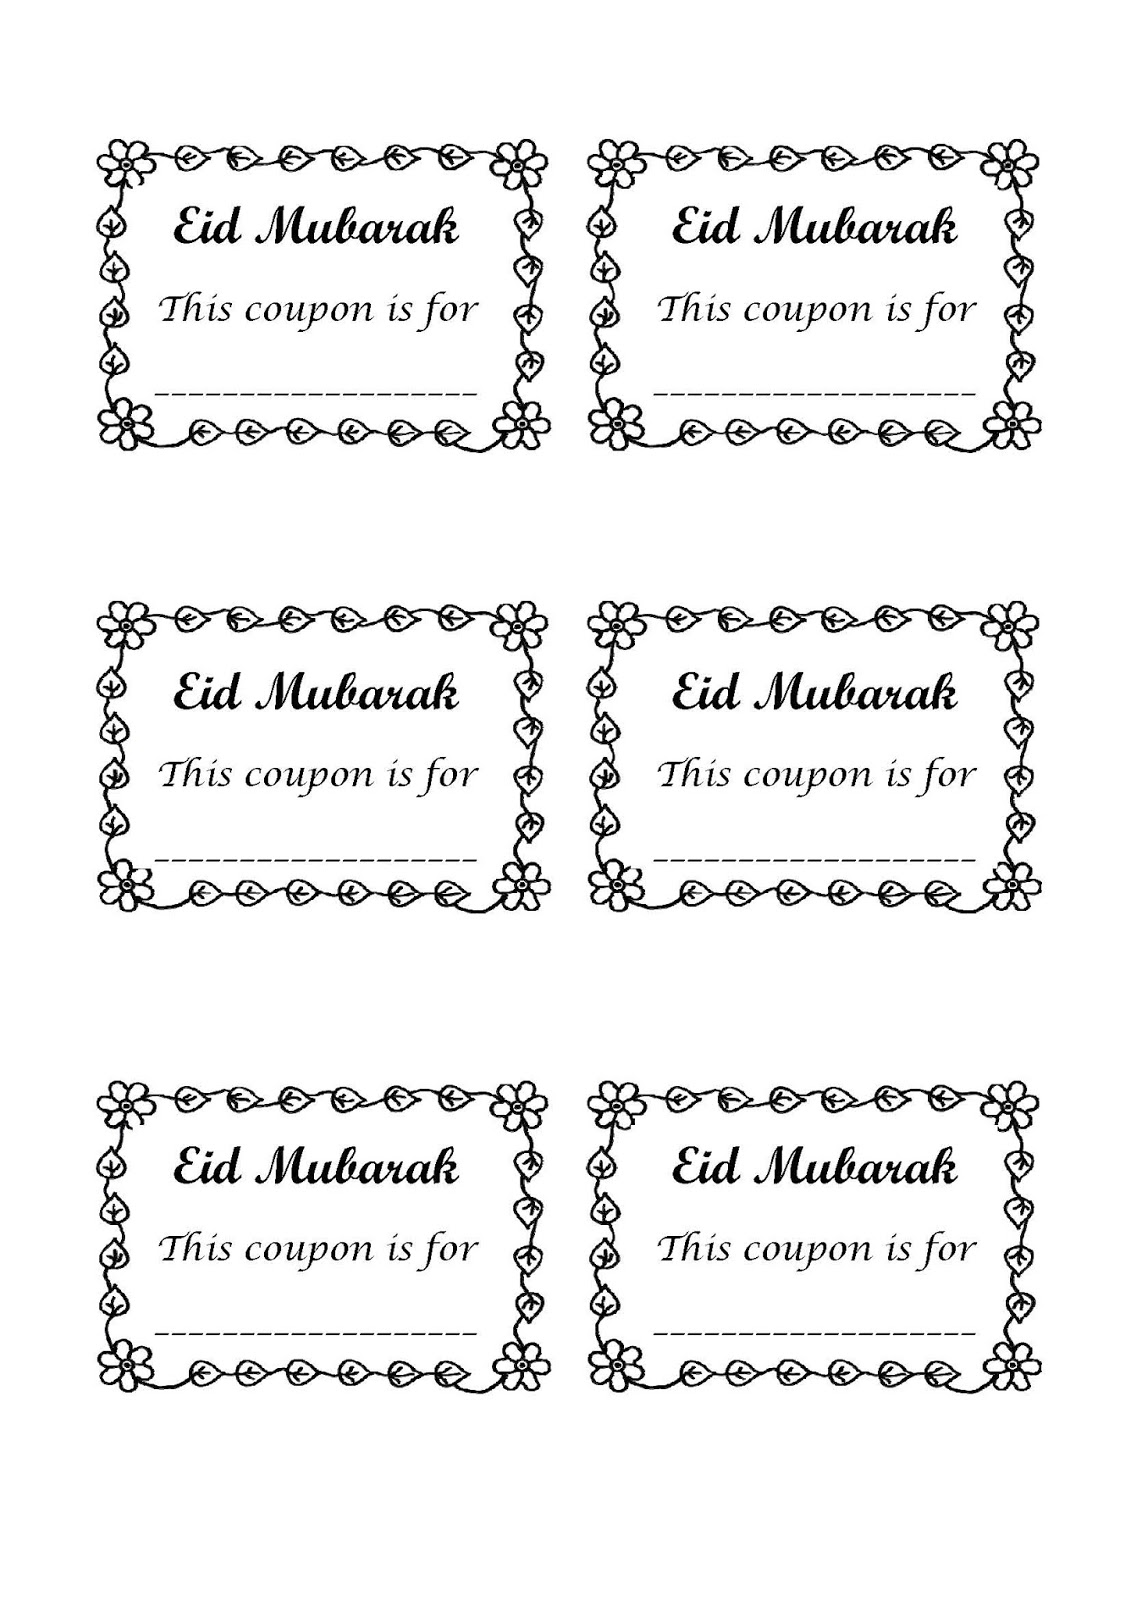 ilma education s eduparenting coupons as eid gifts for all ages you can cut them out and give individually or you can cut them then staple them together to give as a booklet if you give them as a booklet